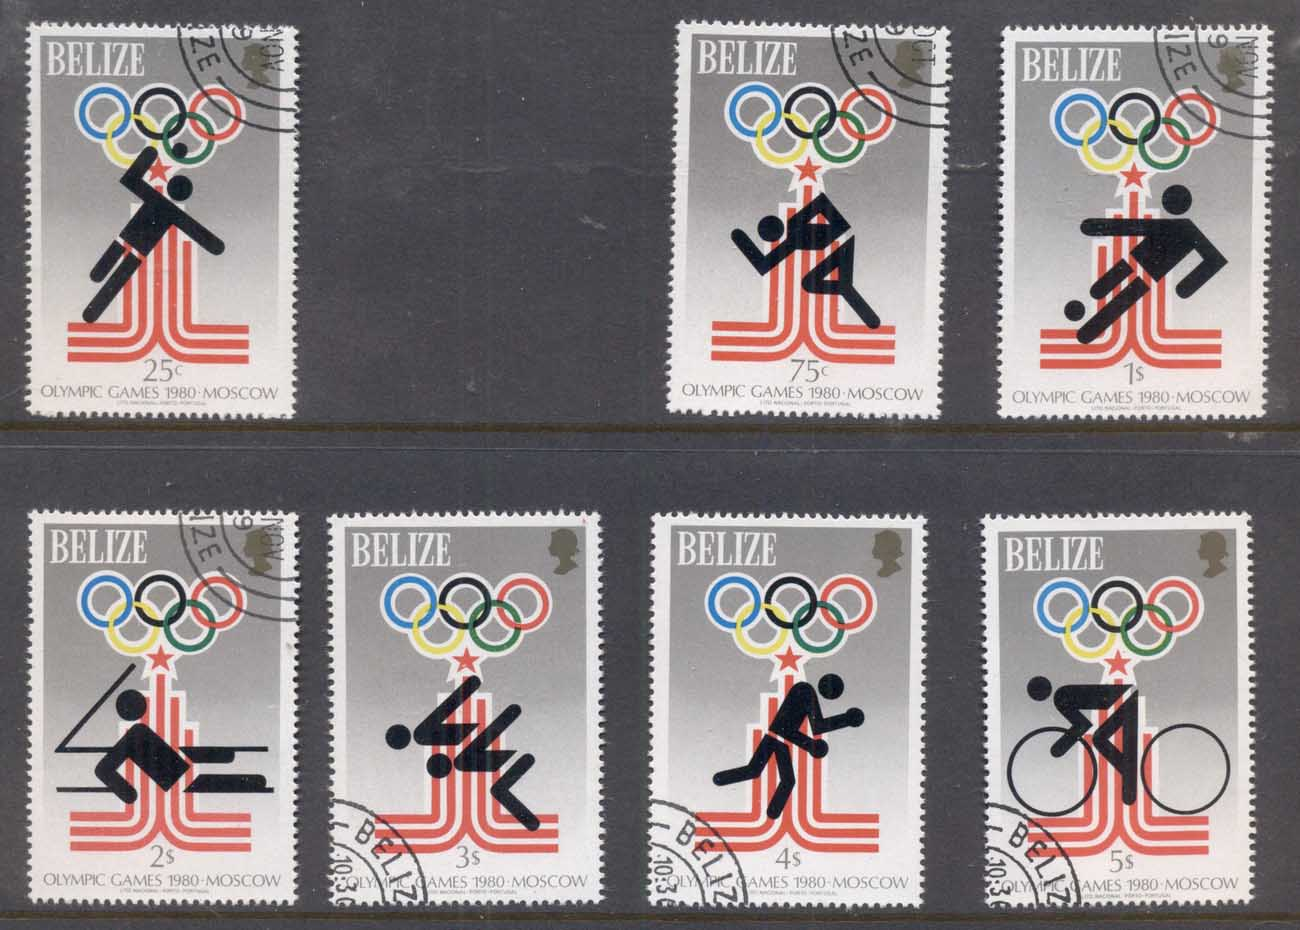 Belize 1979 Summer Olympics Moscow (7/8, no 50c) CTO